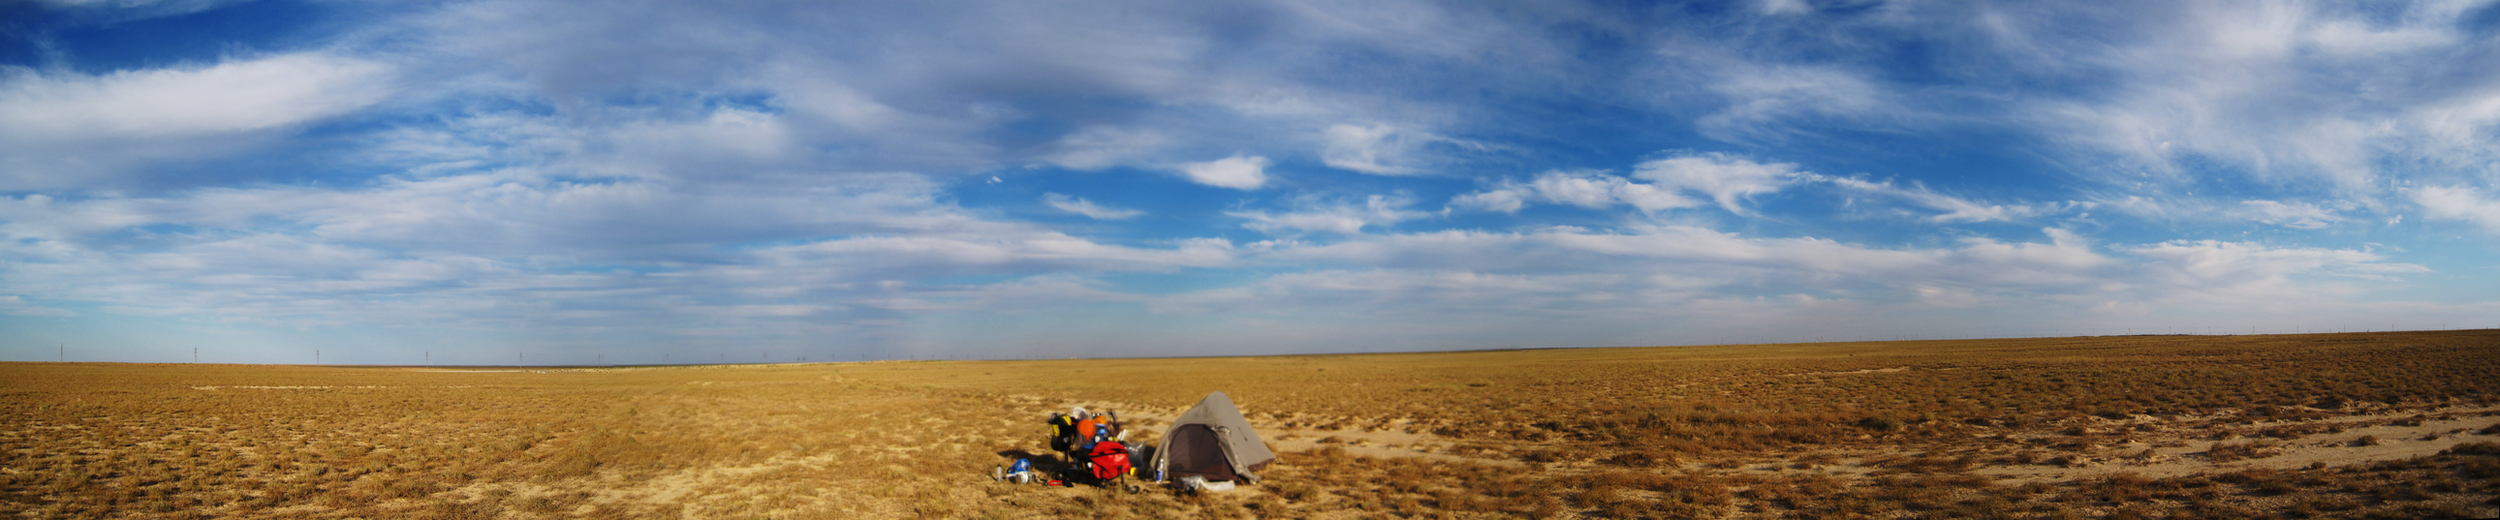 The Kazakh Steppe